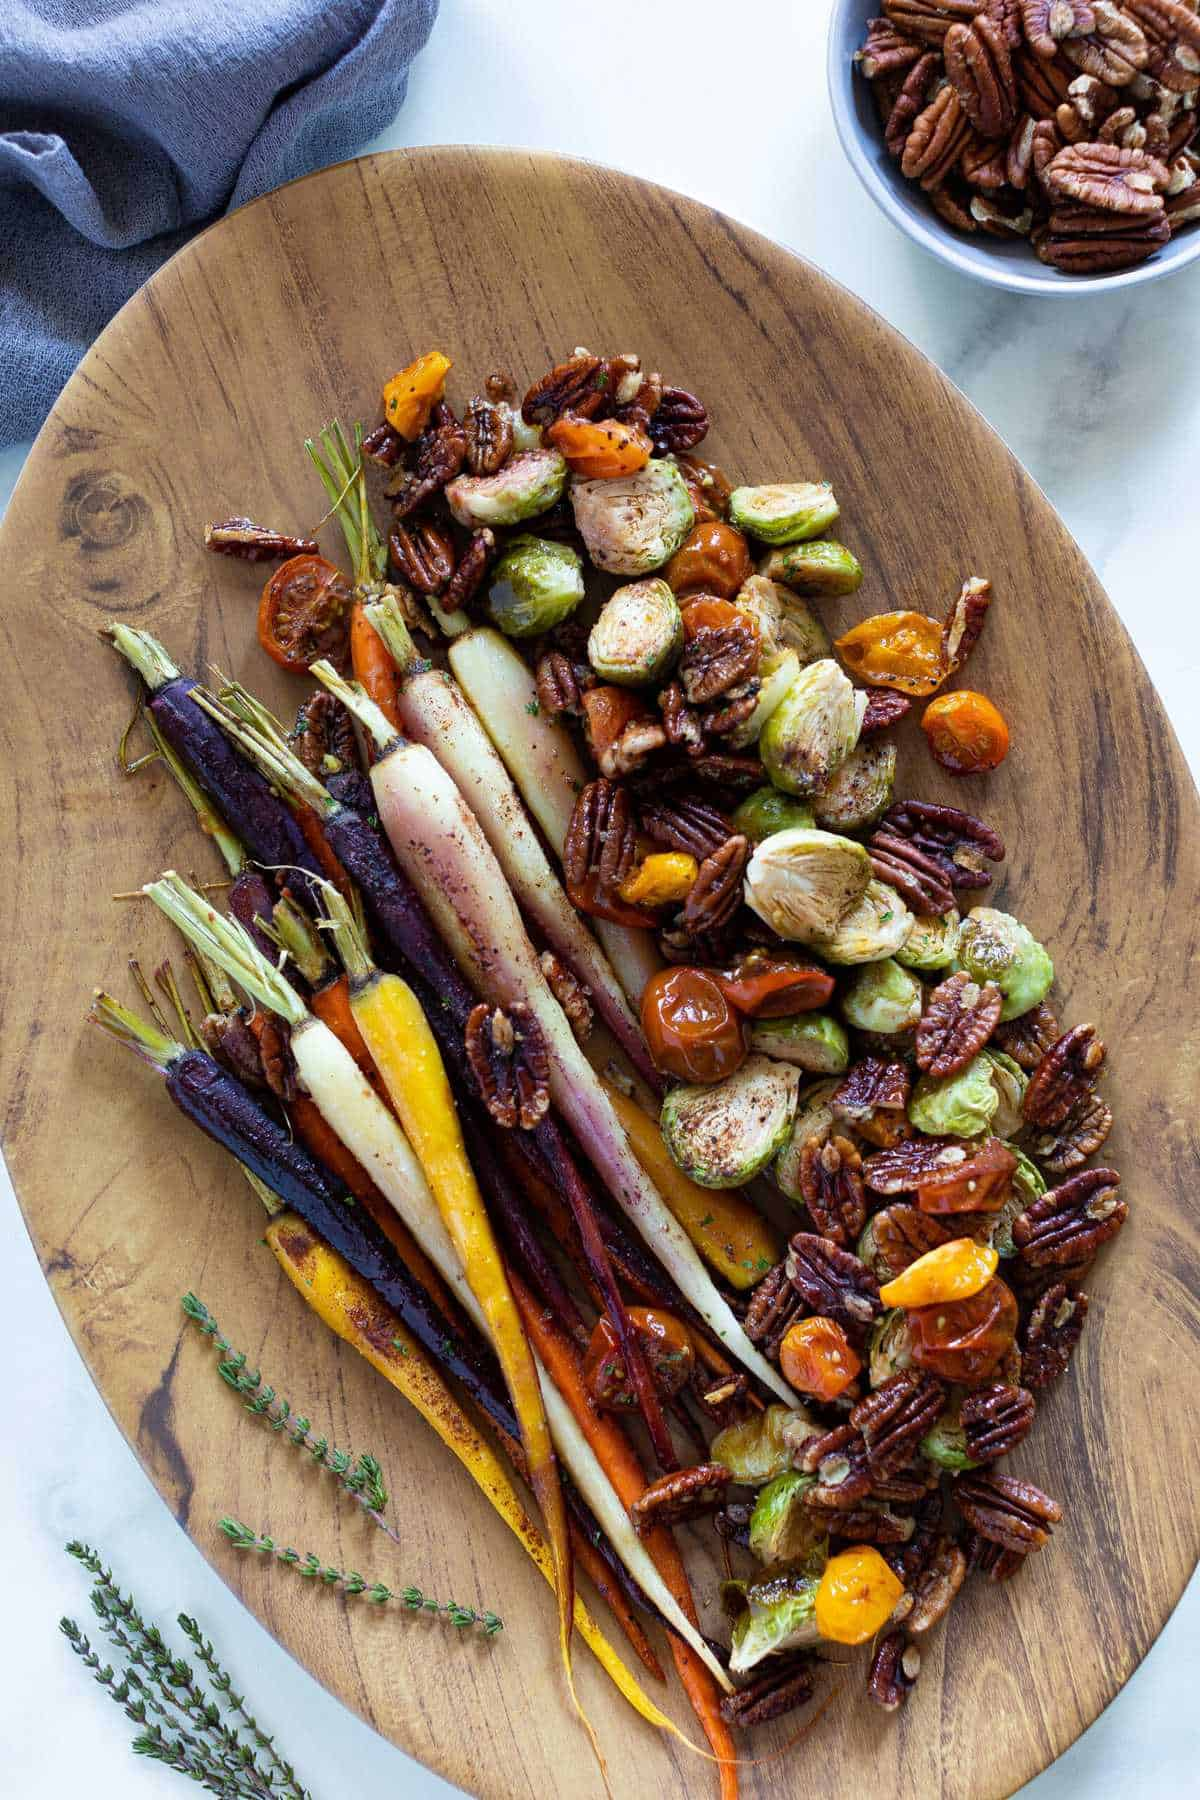 MAPLE ROASTED VEGGIES, PECANS, + RANCH SAUCE